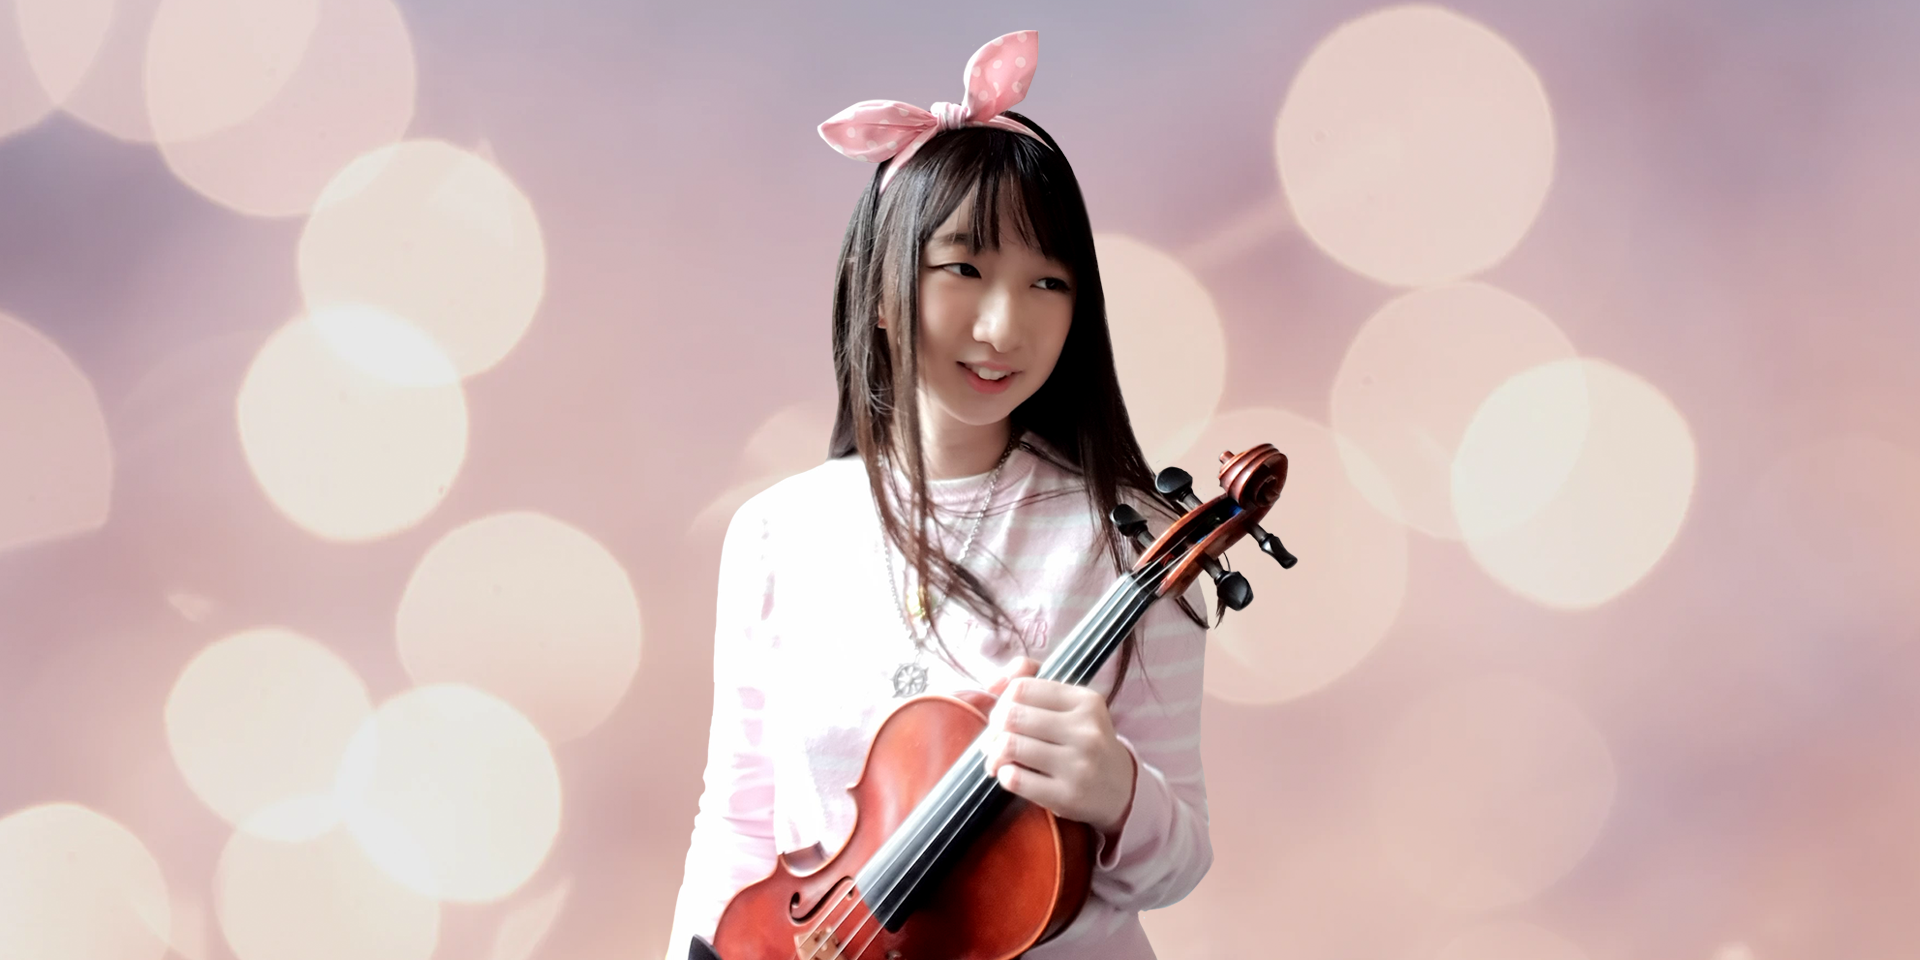 """M DRAKO: """"I hope to tell stories through music"""" – An interview with Singapore's viral violinist"""